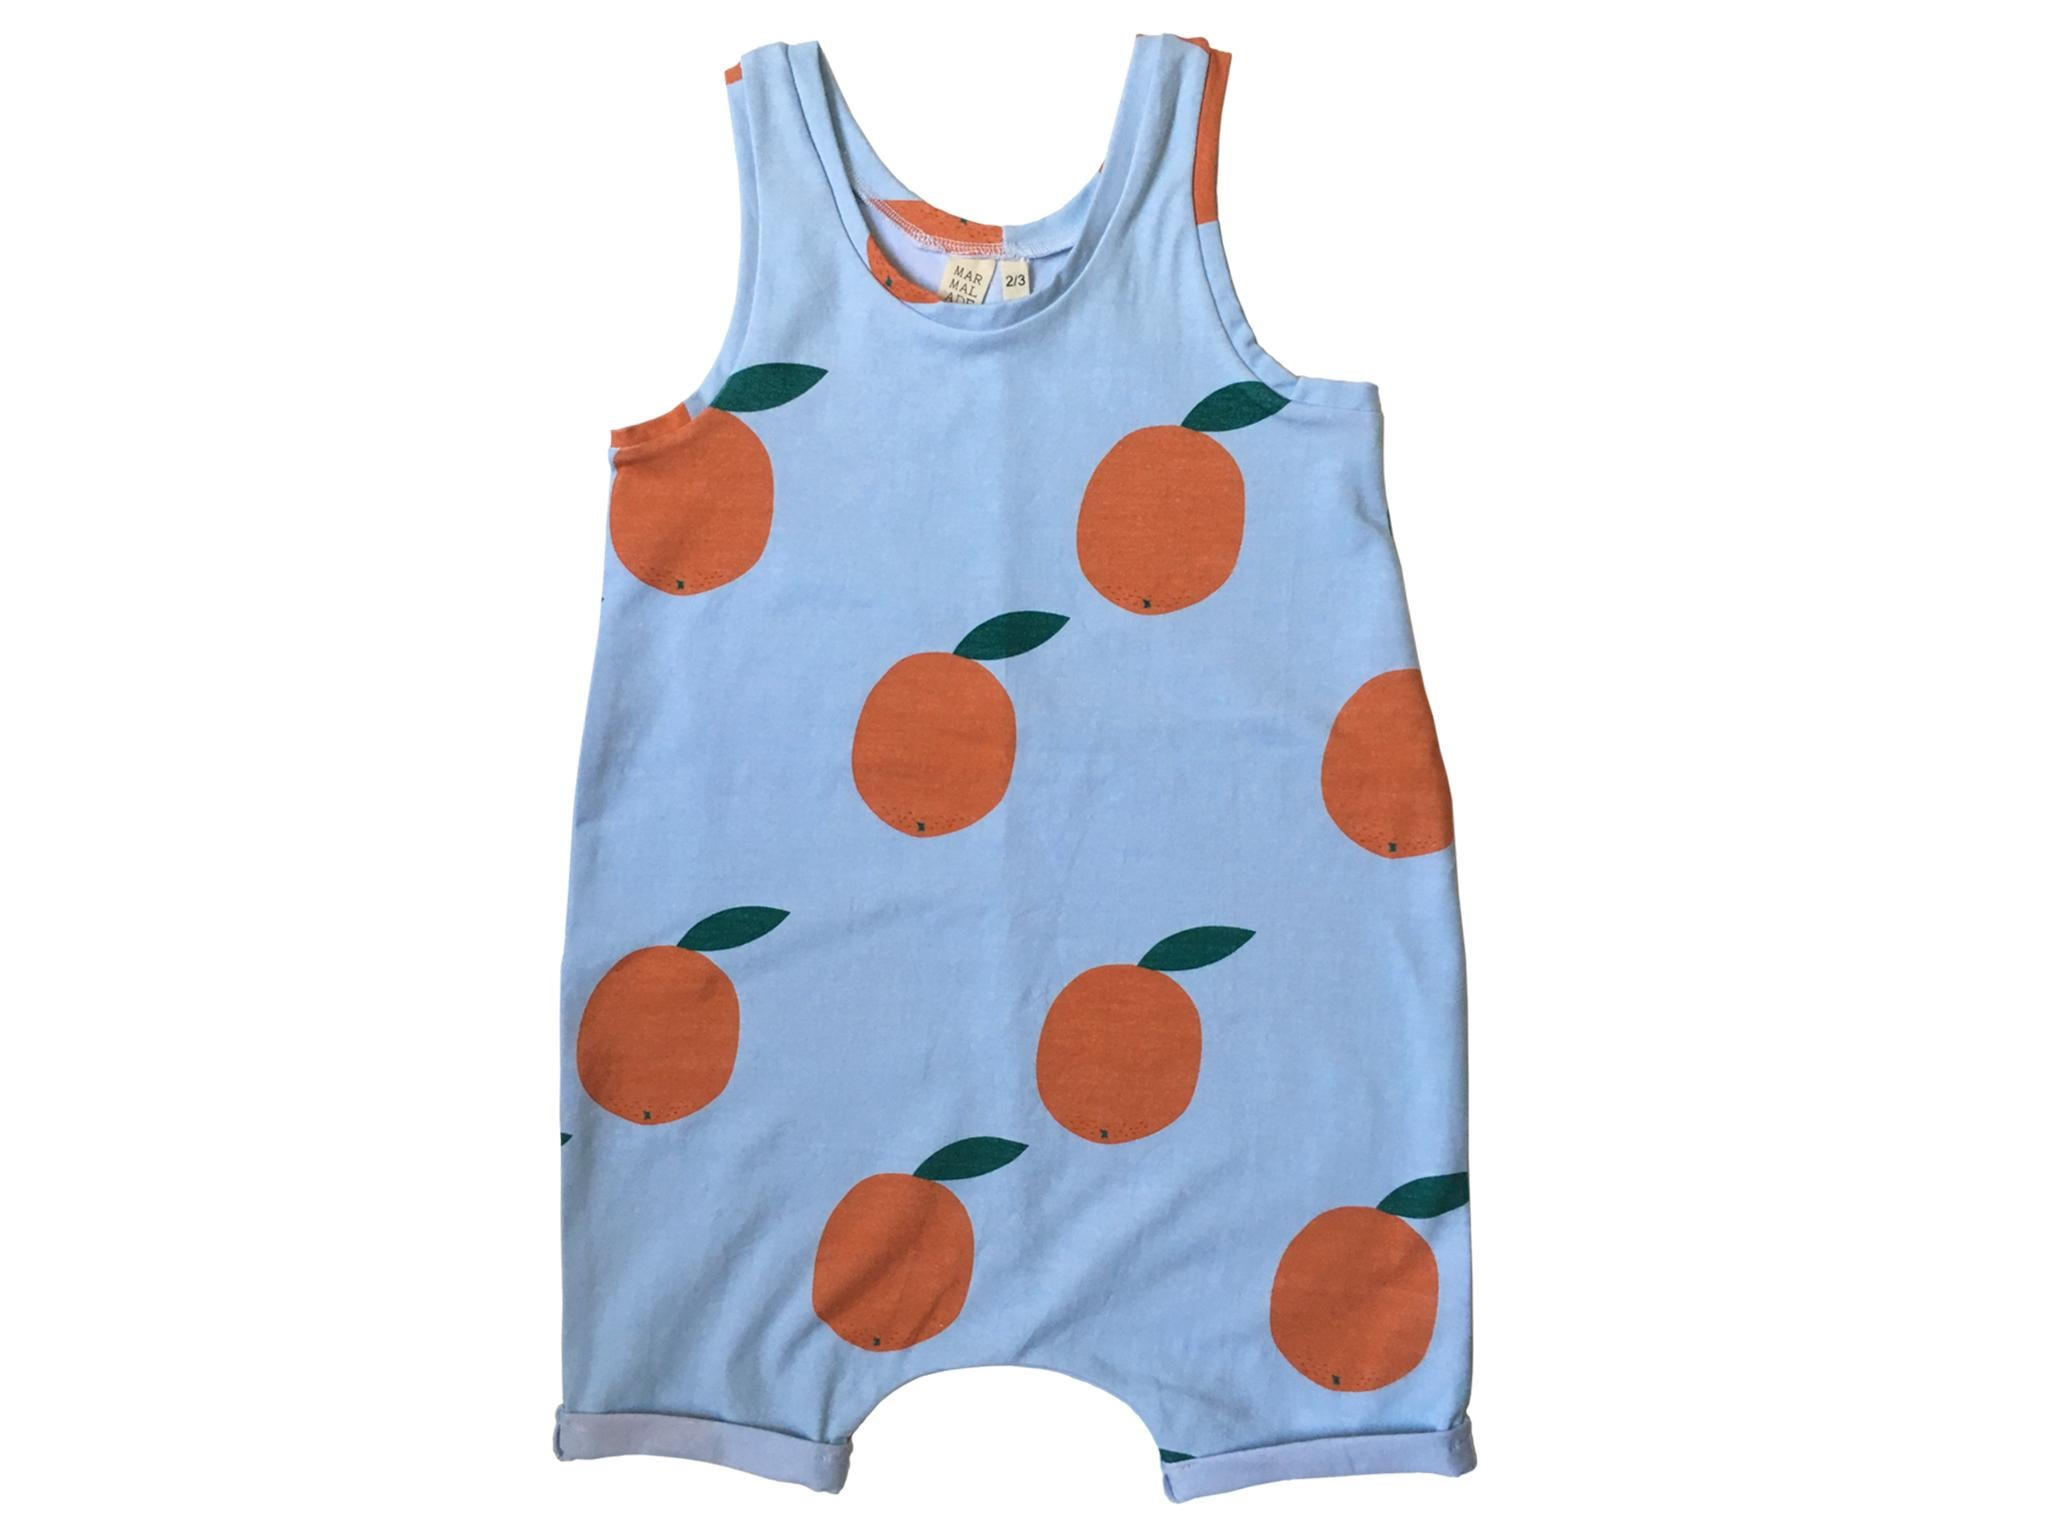 10 best brands for gender-neutral baby clothes  ac16a67e3